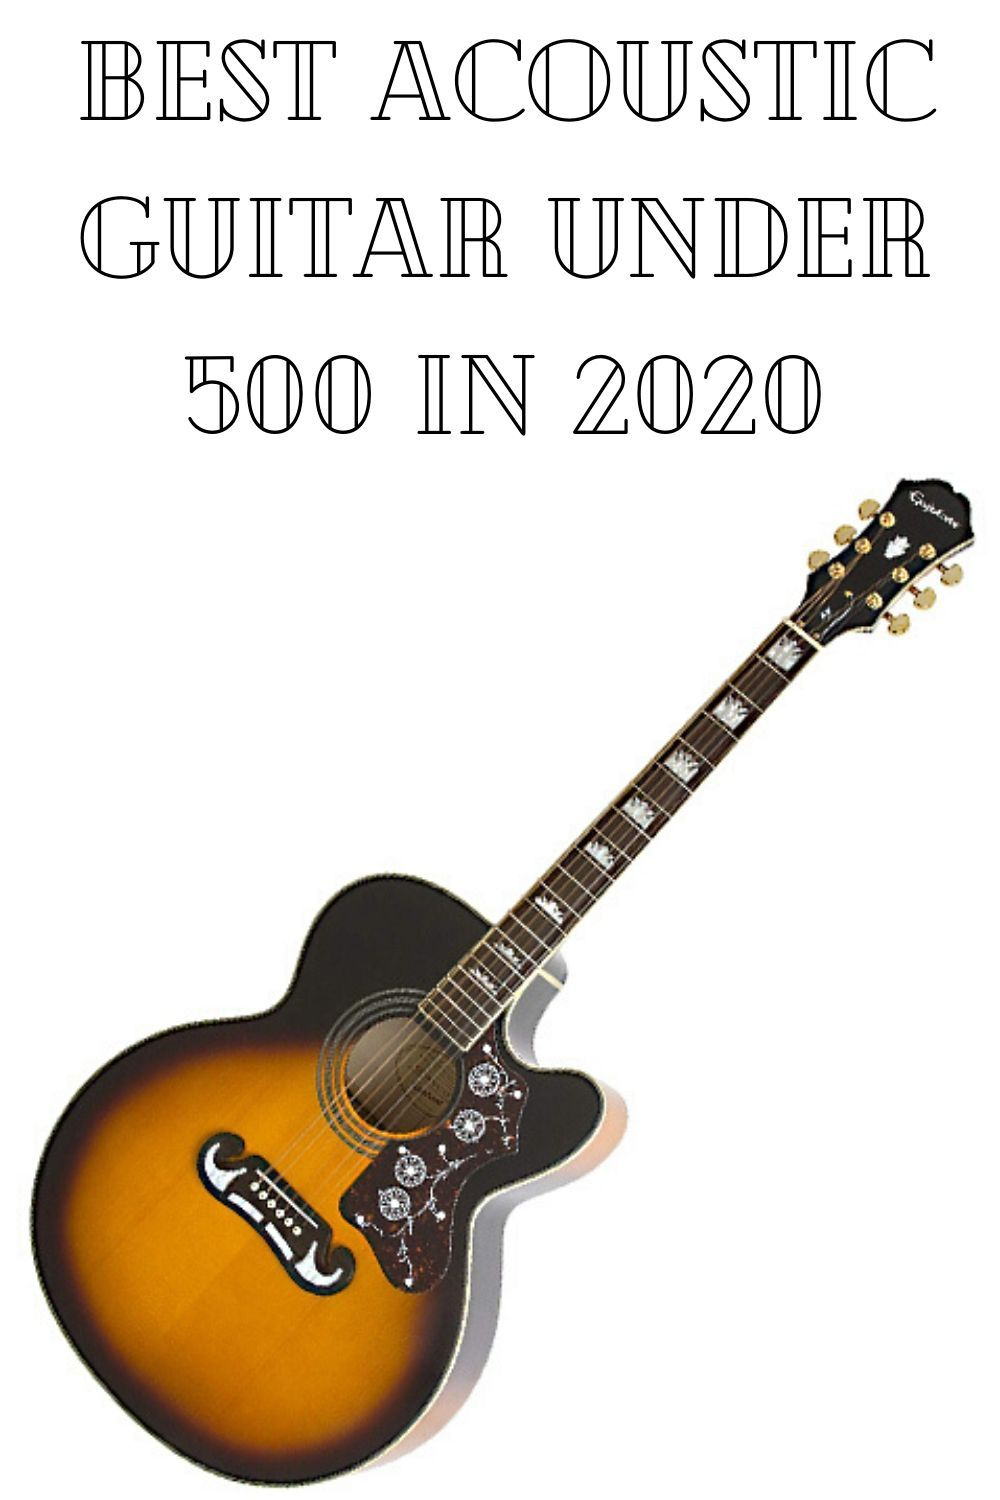 Best Acoustic Guitar Under 500 In 2020 In 2020 Best Acoustic Guitar Guitar Acoustic Guitar